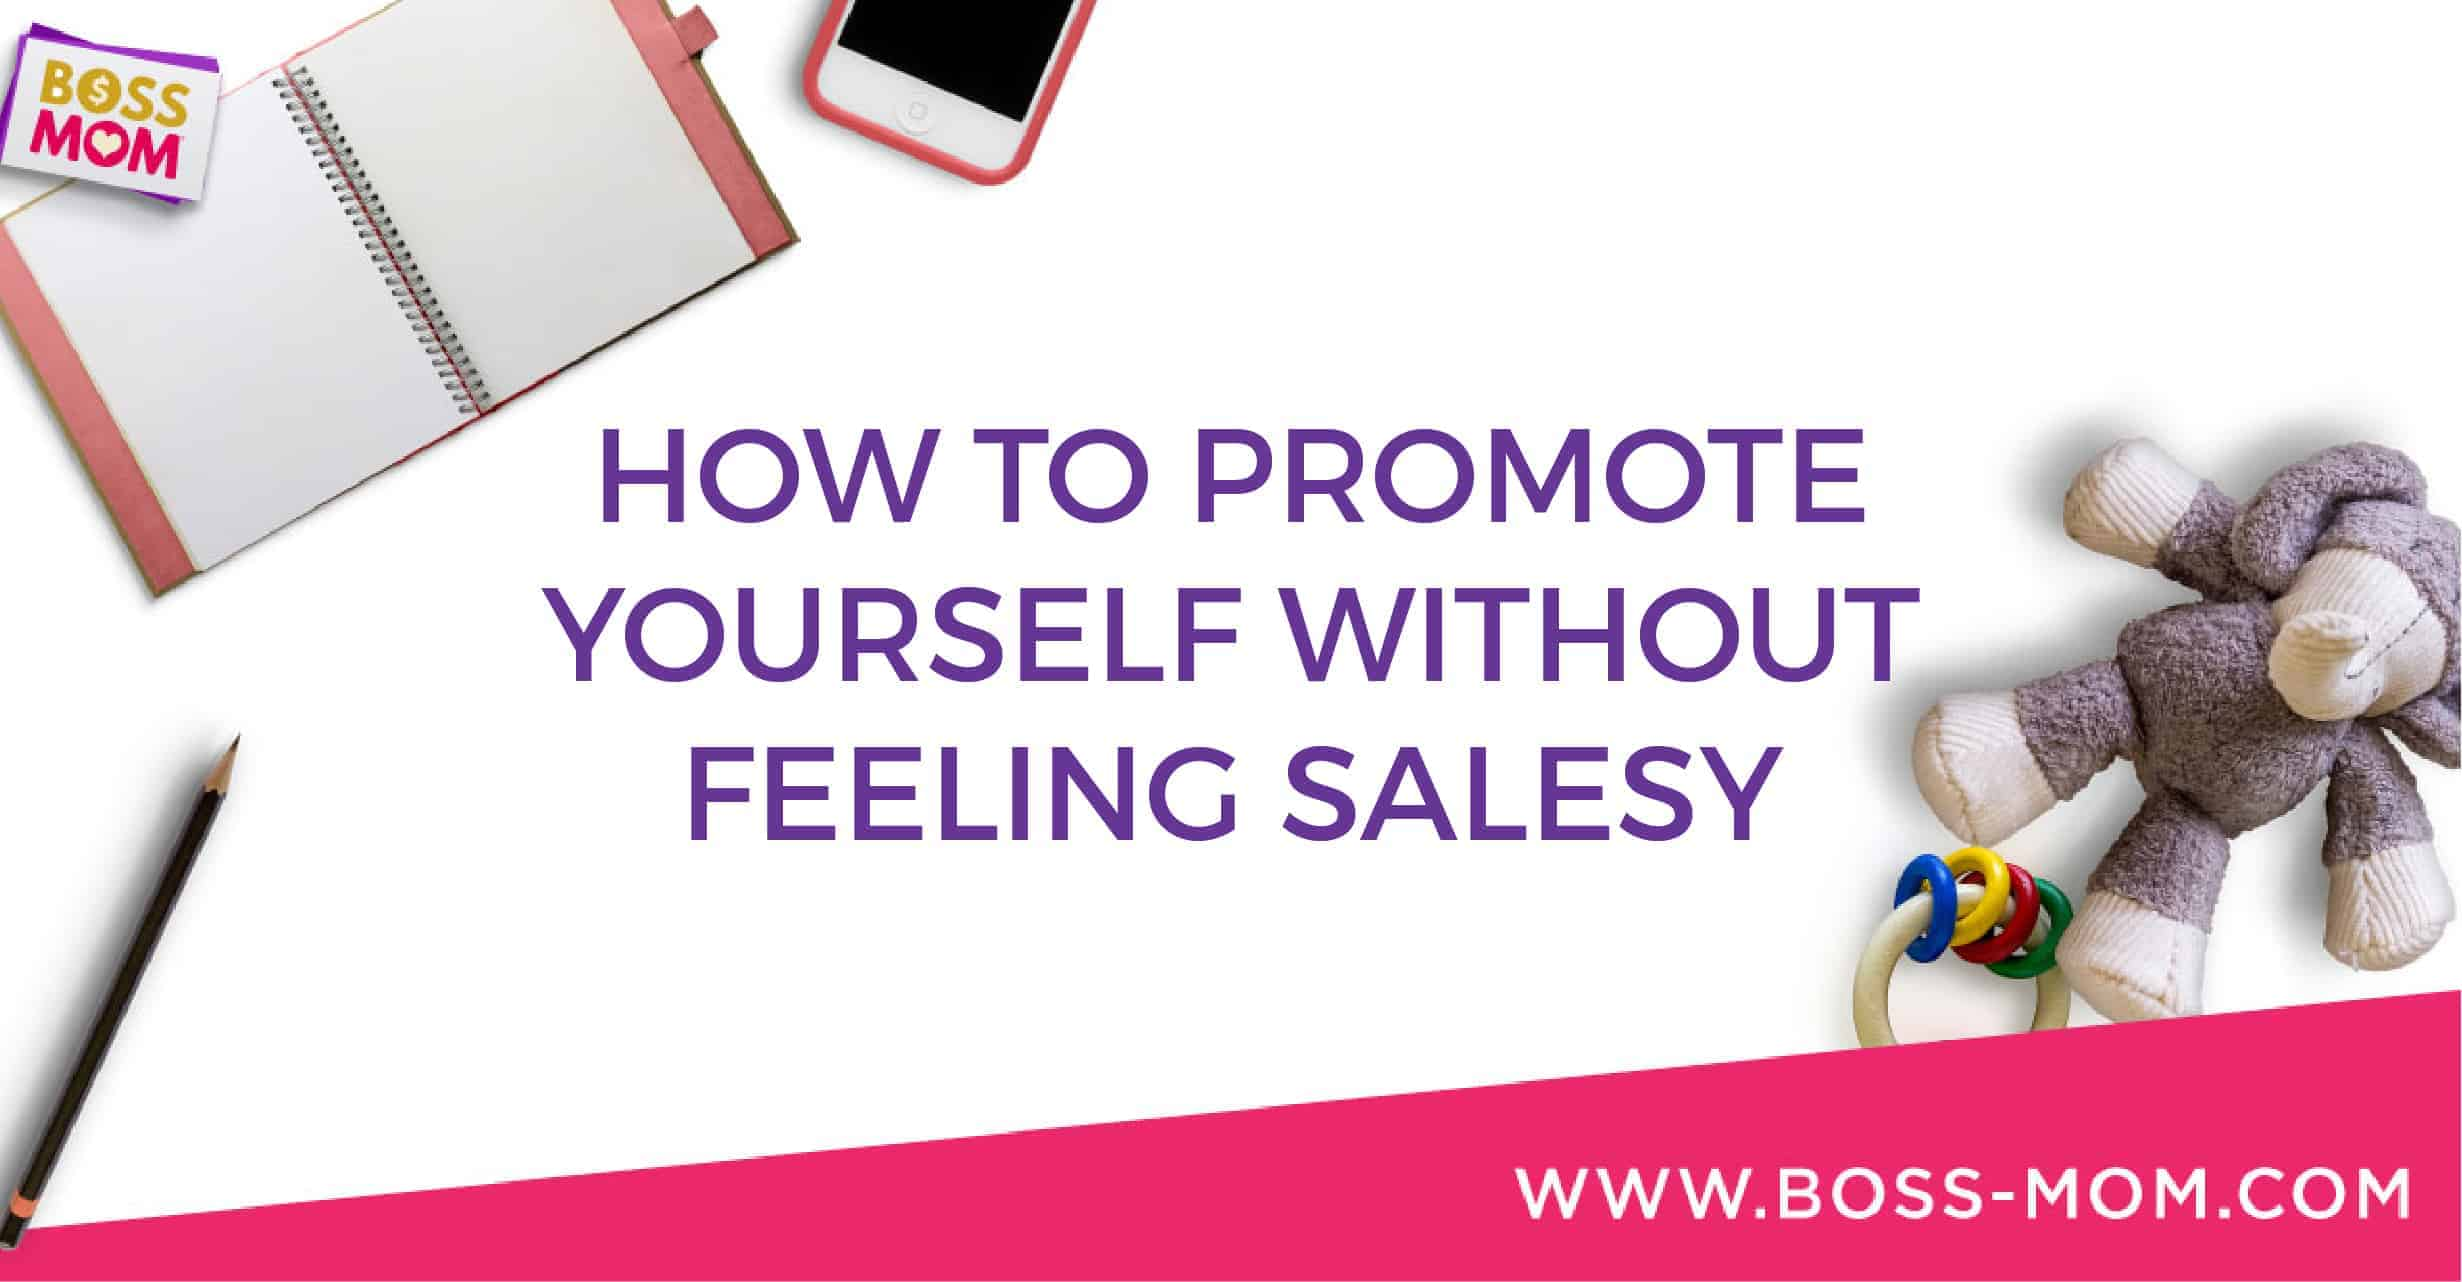 Episode 241: How to Promote Yourself Without Feeling Salesy